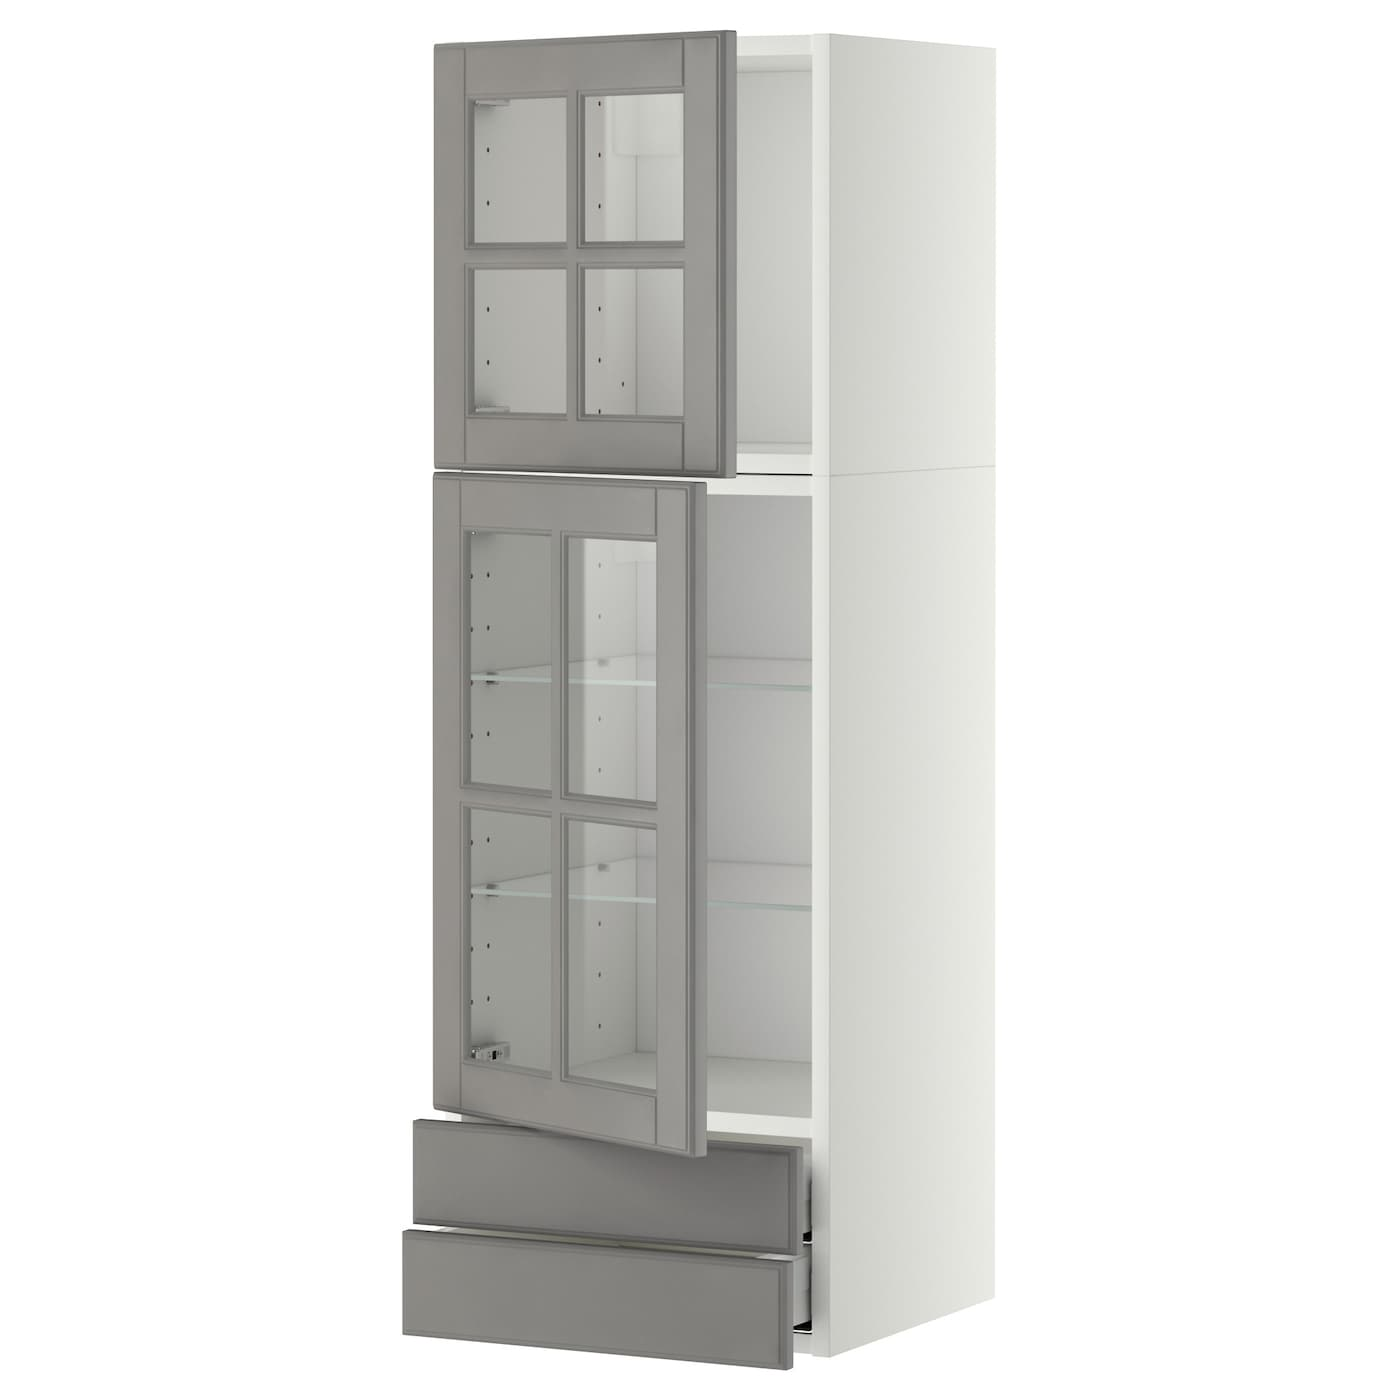 metod maximera wall cab w 2 glass doors 2 drawers white bodbyn grey 40x120 cm ikea. Black Bedroom Furniture Sets. Home Design Ideas